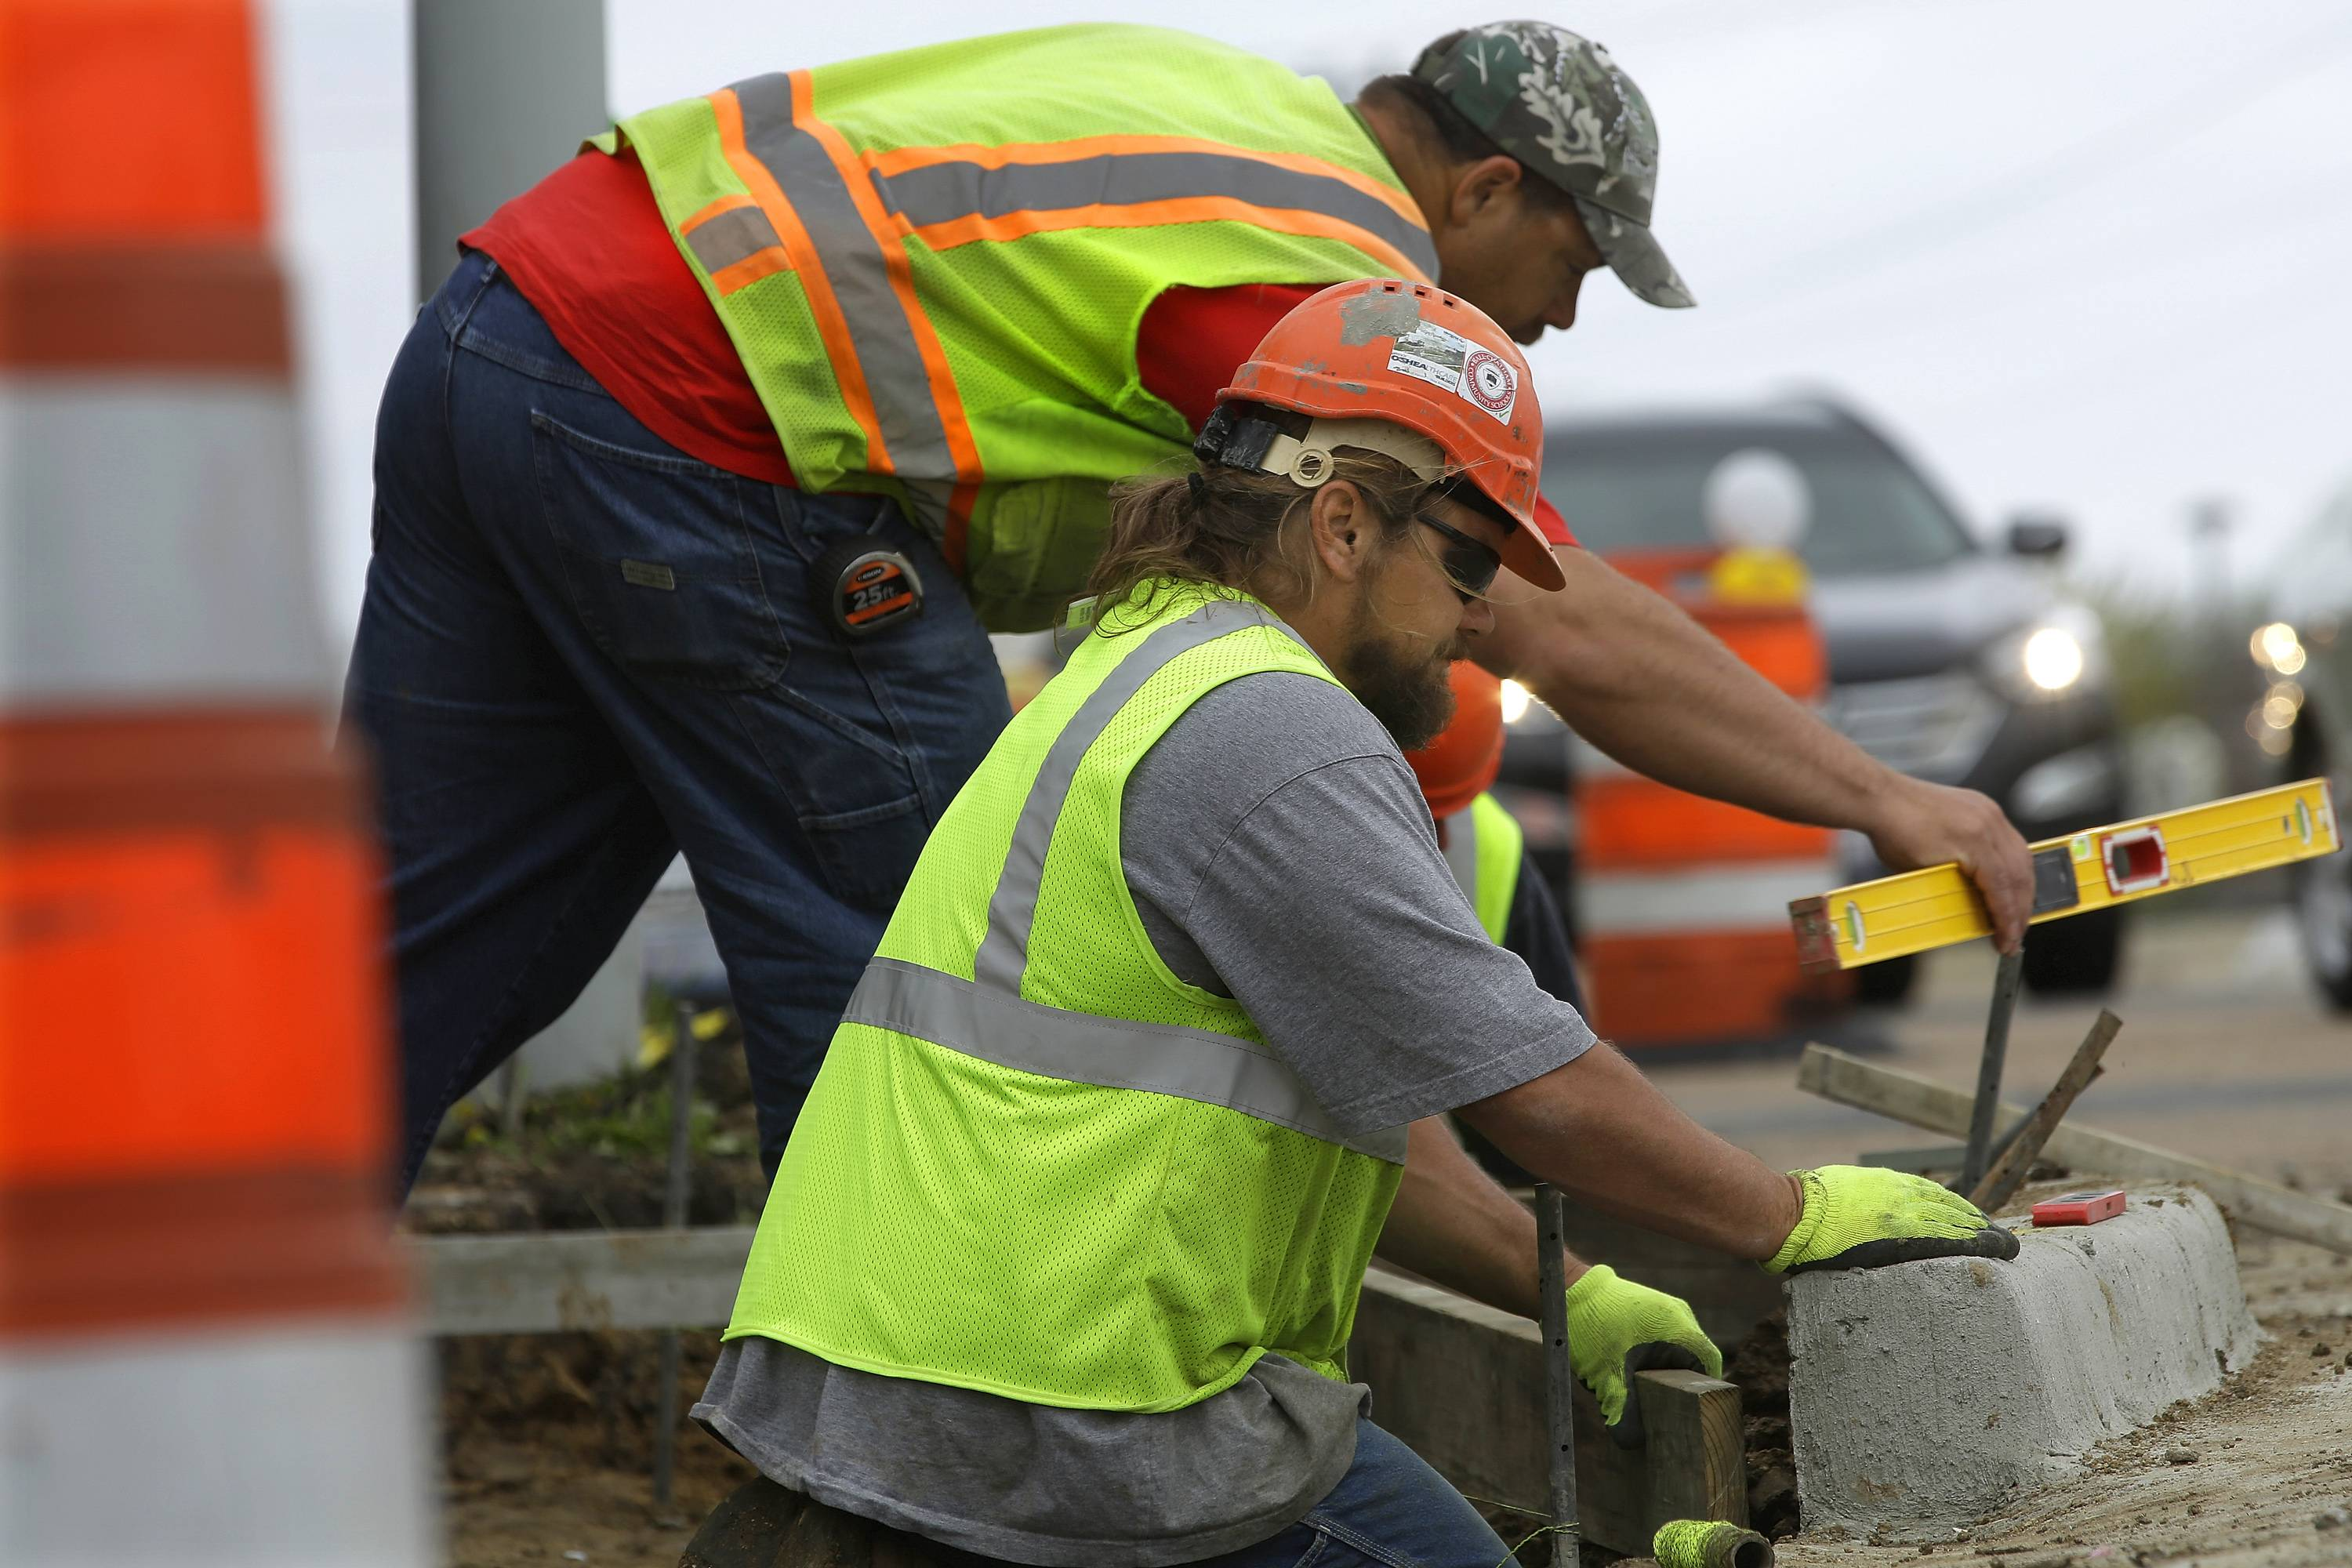 A construction crew works on a roadway Monday in Springfield. The Transportation for Illinois Coalition is sending a letter to state lawmakers this week warning that acceptable road and bridge conditions are in jeopardy over the next five years without significant new money.